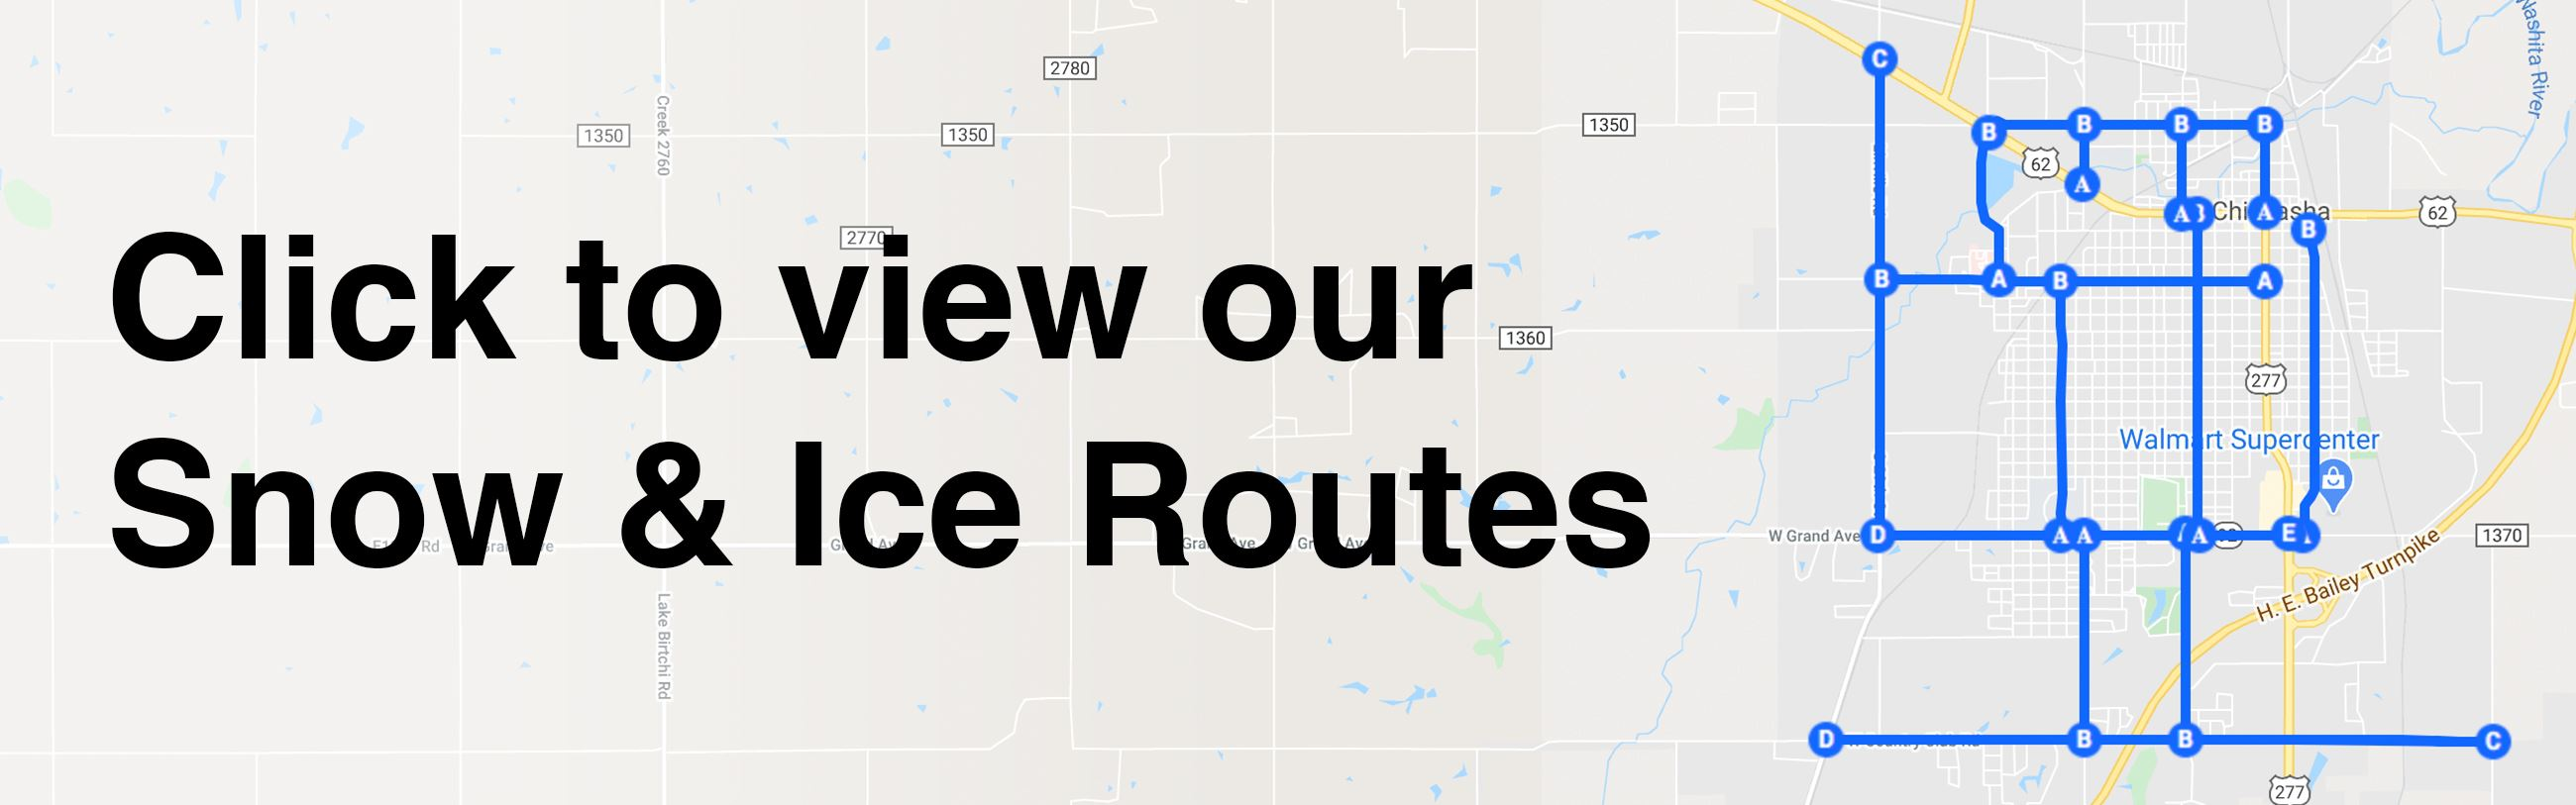 Click this image to view Snow & Ice Route information